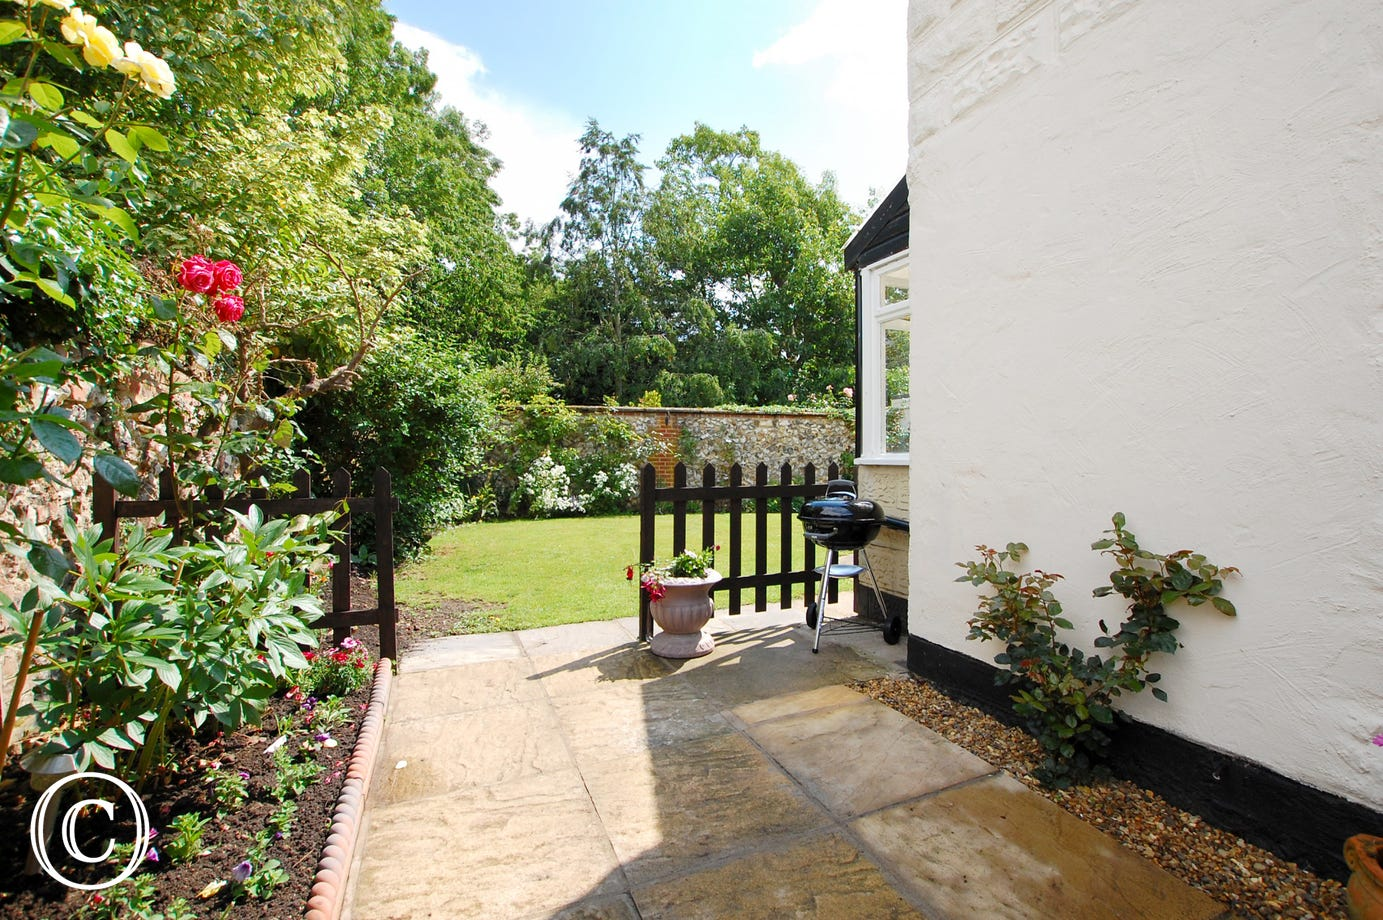 Access to rear garden with barbecue